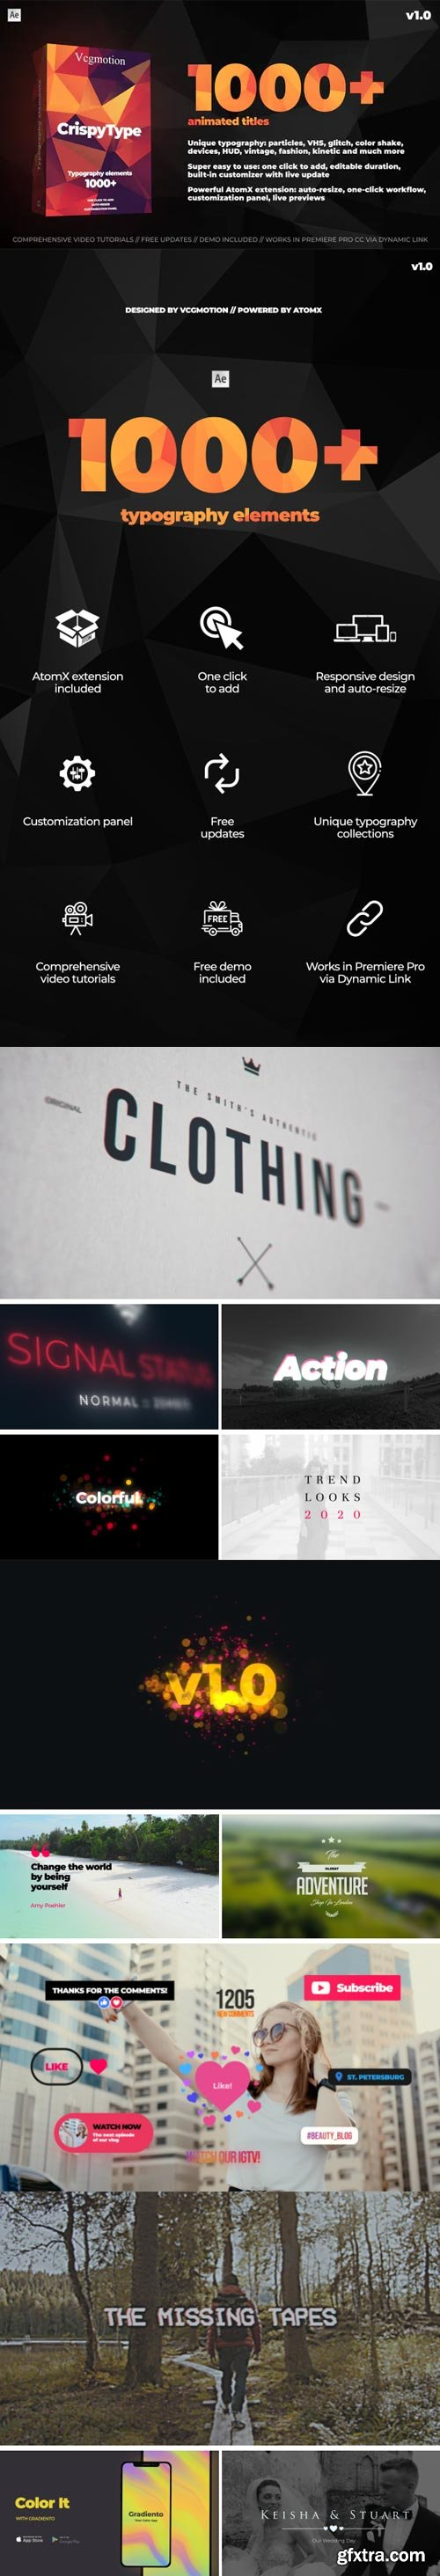 Videohive - 1000+ Titles And Typography - 28464847